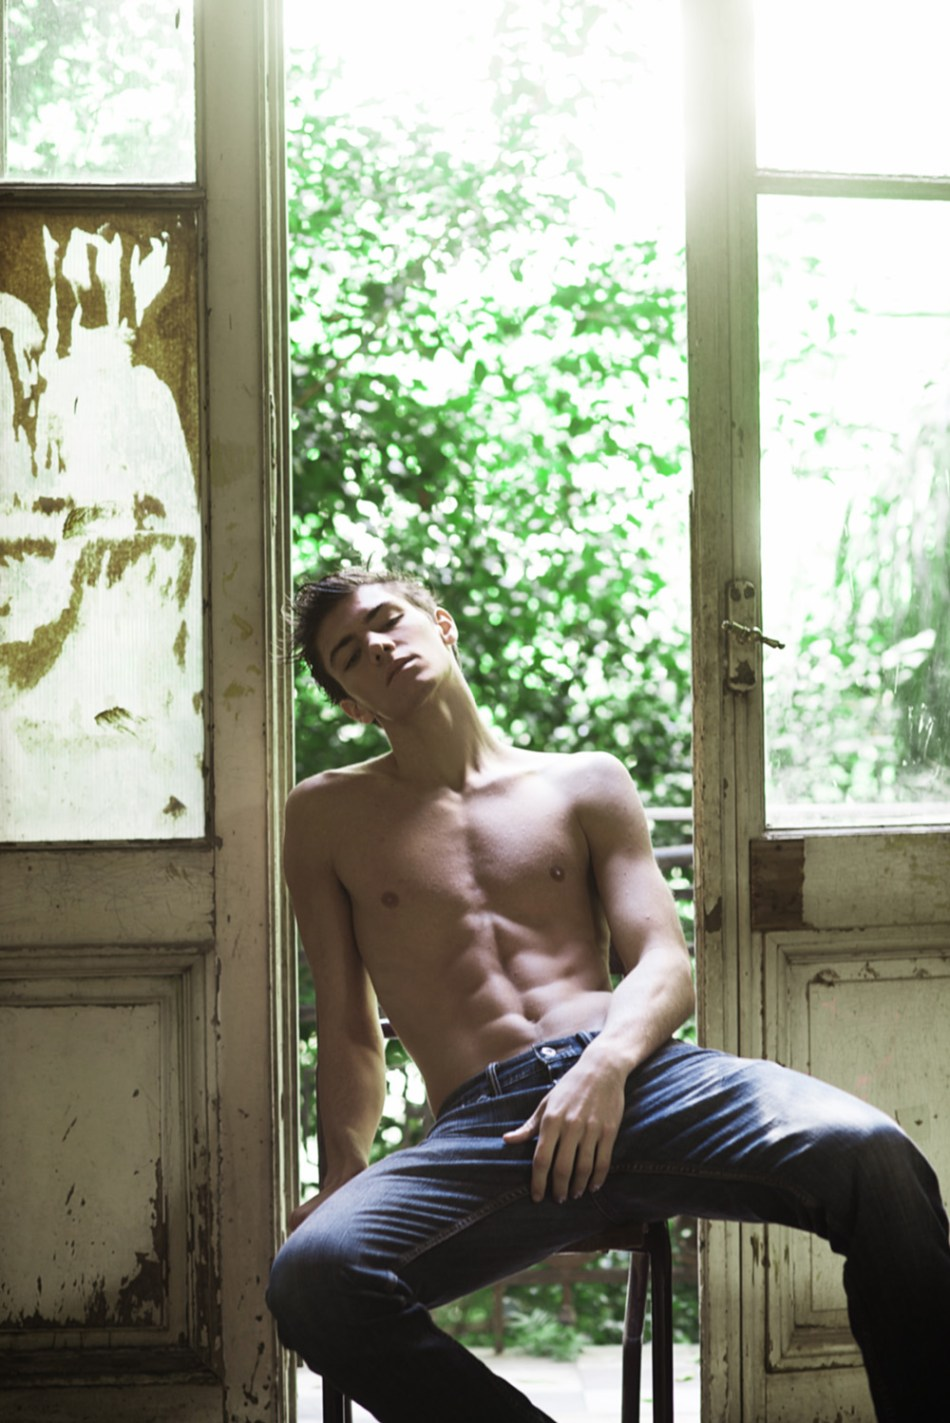 So hot so young featuring the new work of Tino Vargas featuring Argentinian beauty Martin from DHR Models.